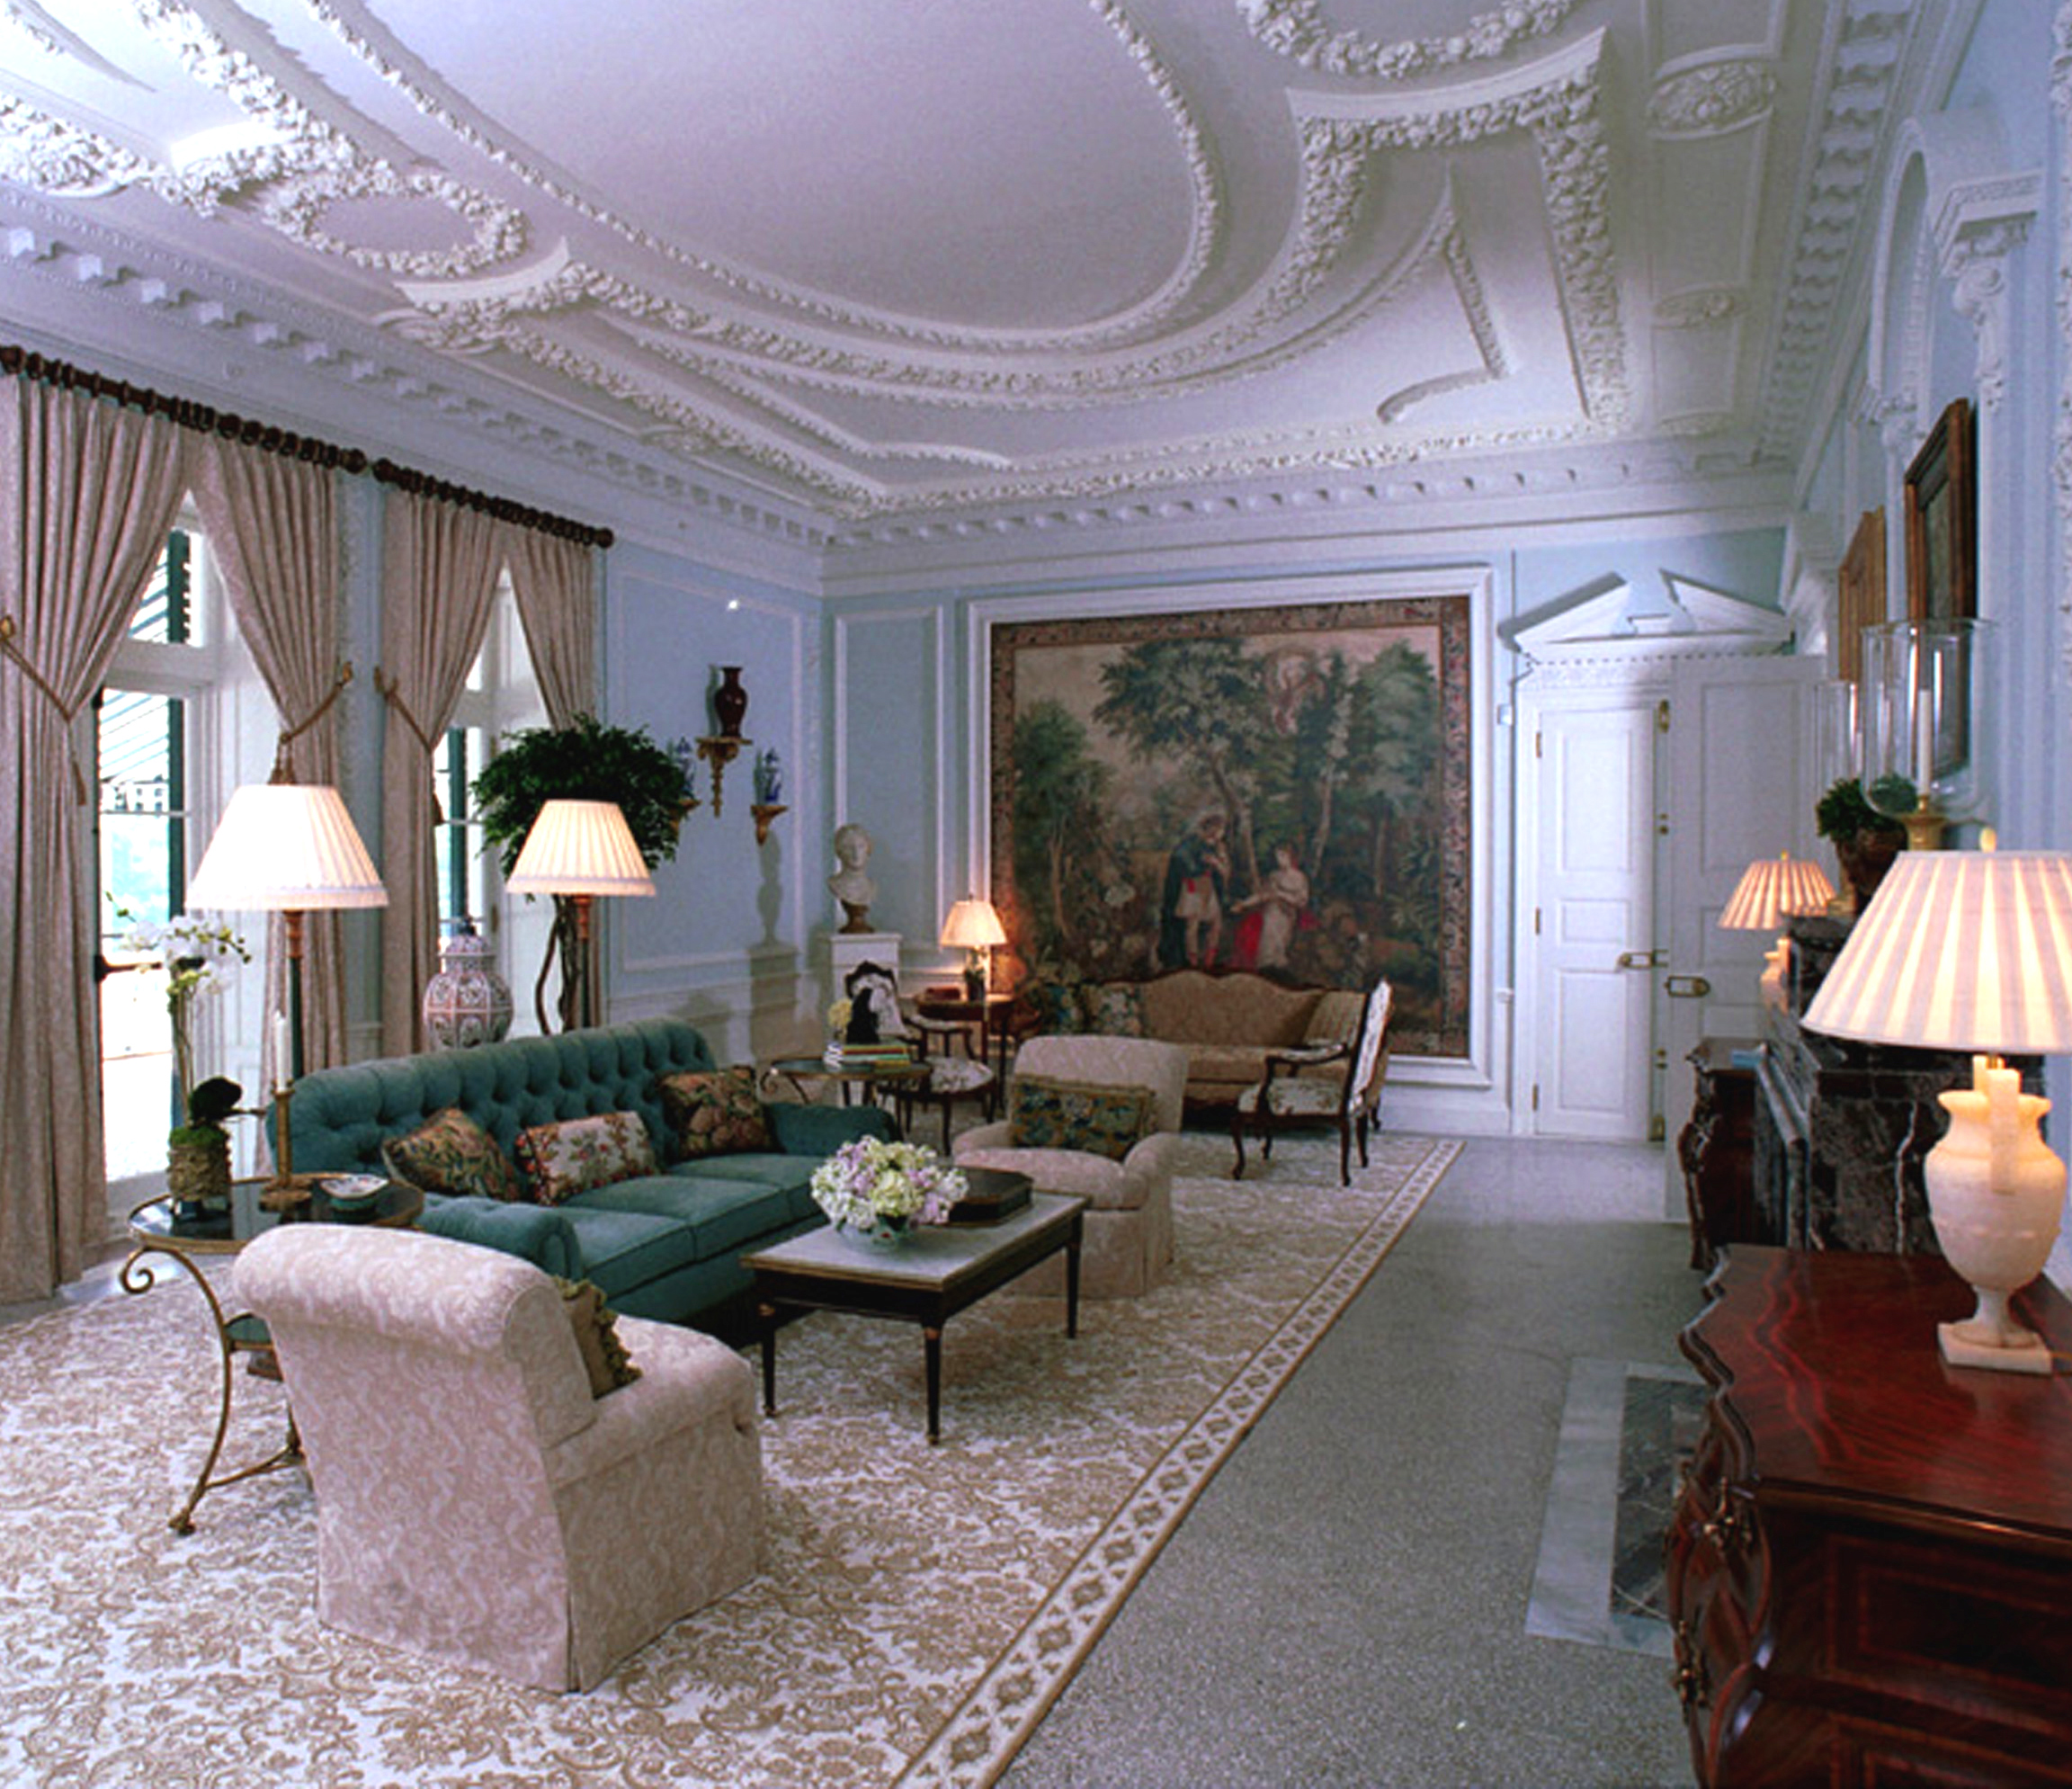 The Mount's drawing room after restoration. Photographer: Jon Crispin